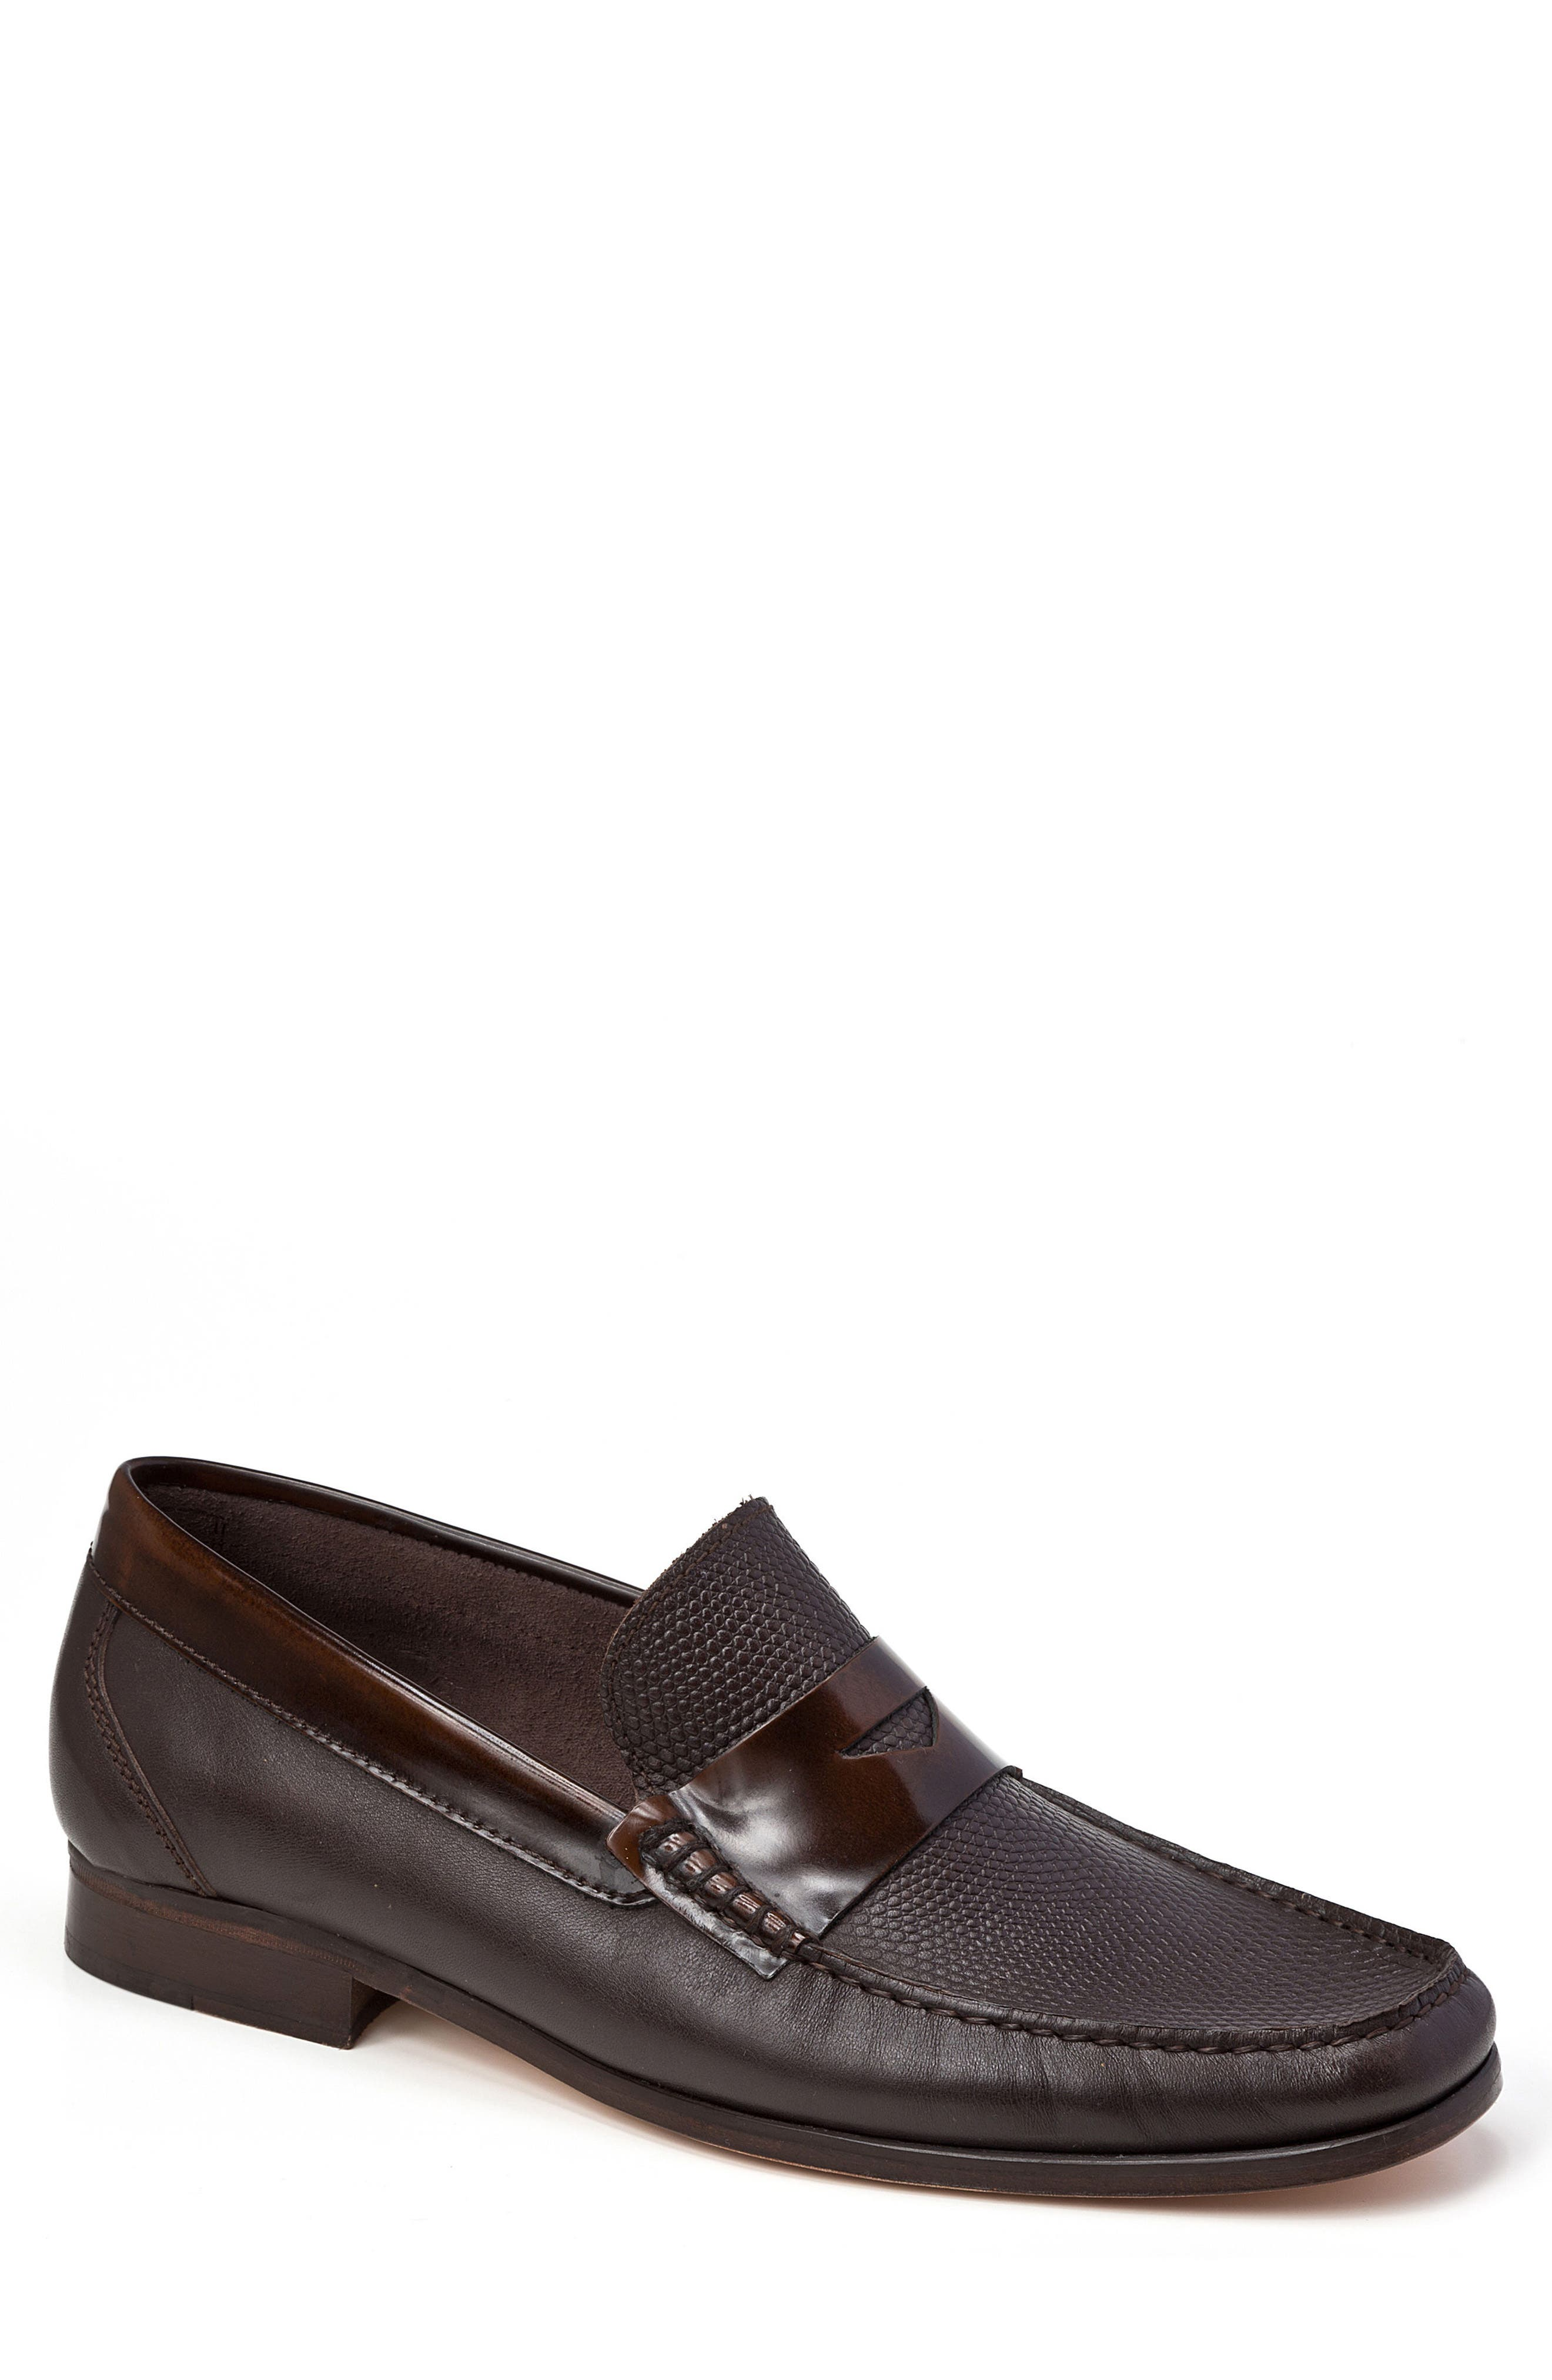 Bilbao Pebble Embossed Penny Loafer,                             Main thumbnail 1, color,                             BROWN